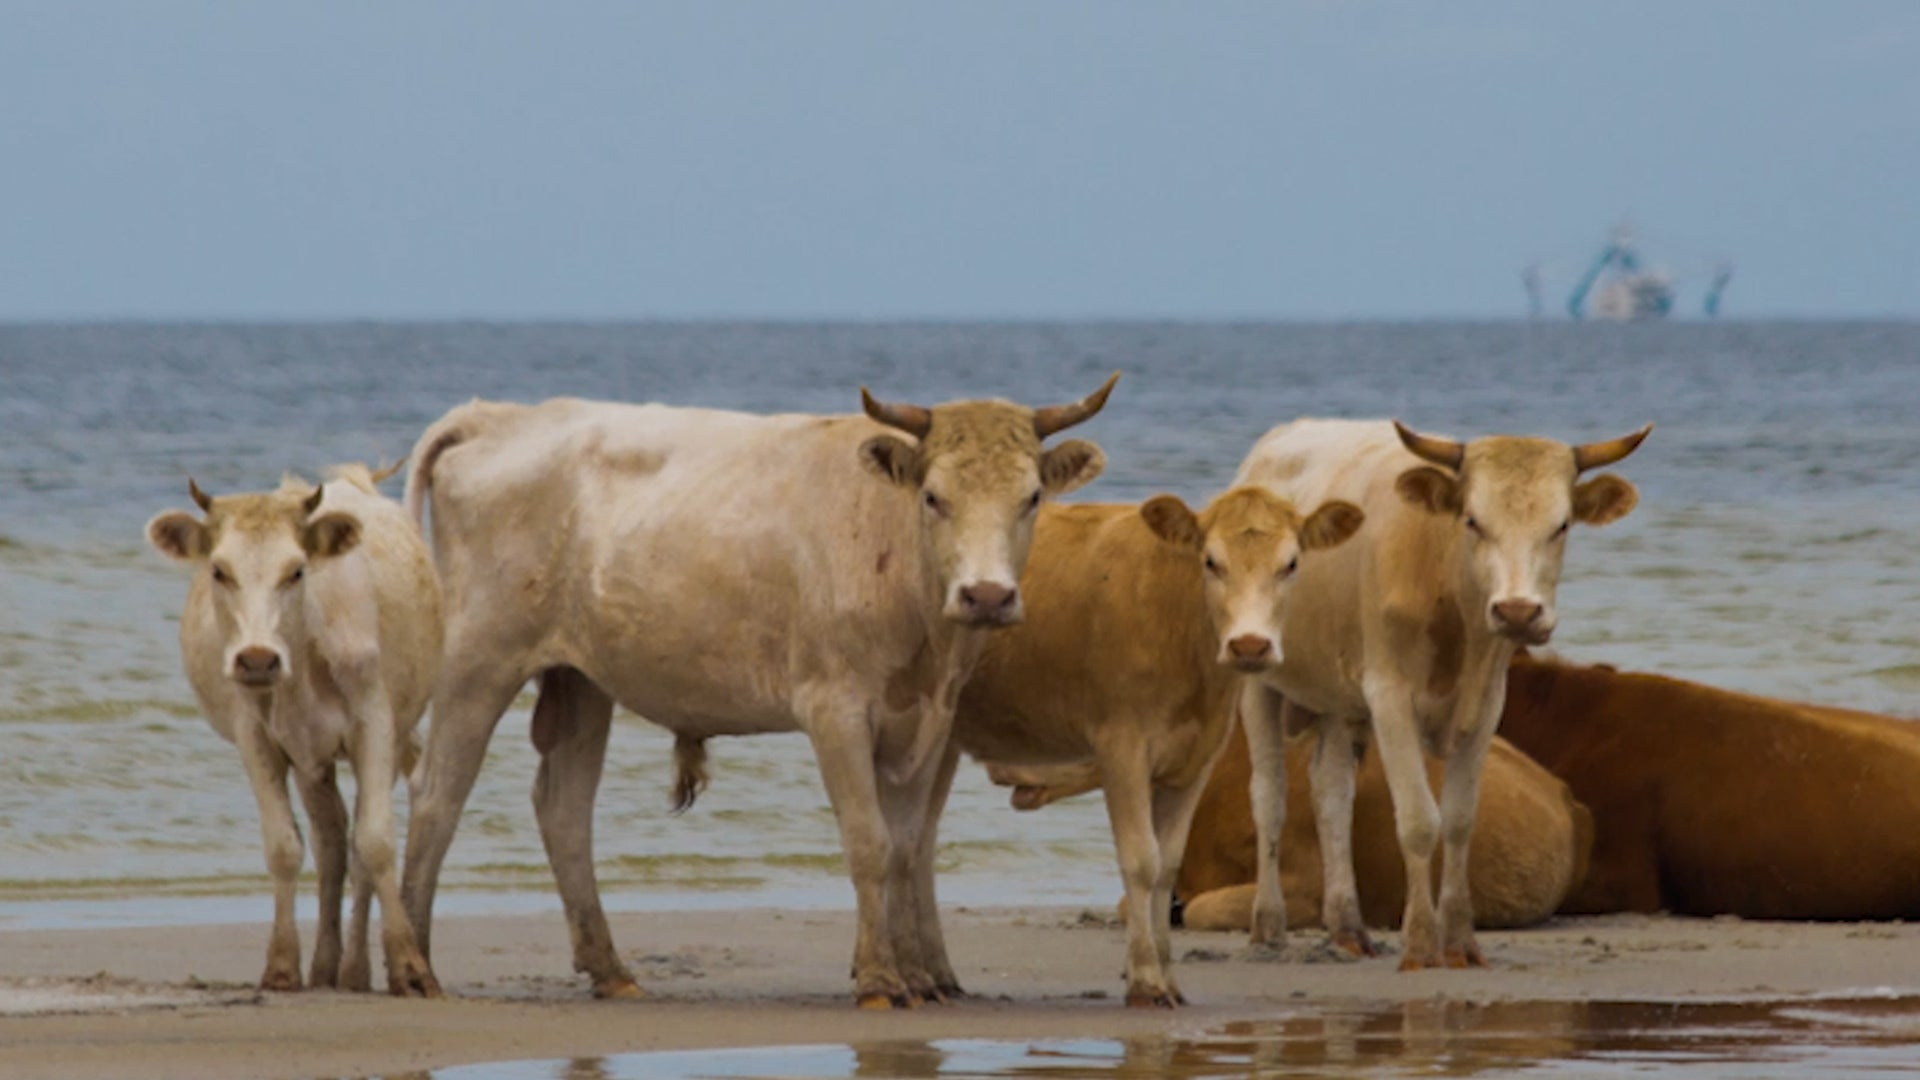 Cows swept out to sea during a sort of mini tsunami in Hurricane Dorian are found alive in North Carolina's Outer Banks.